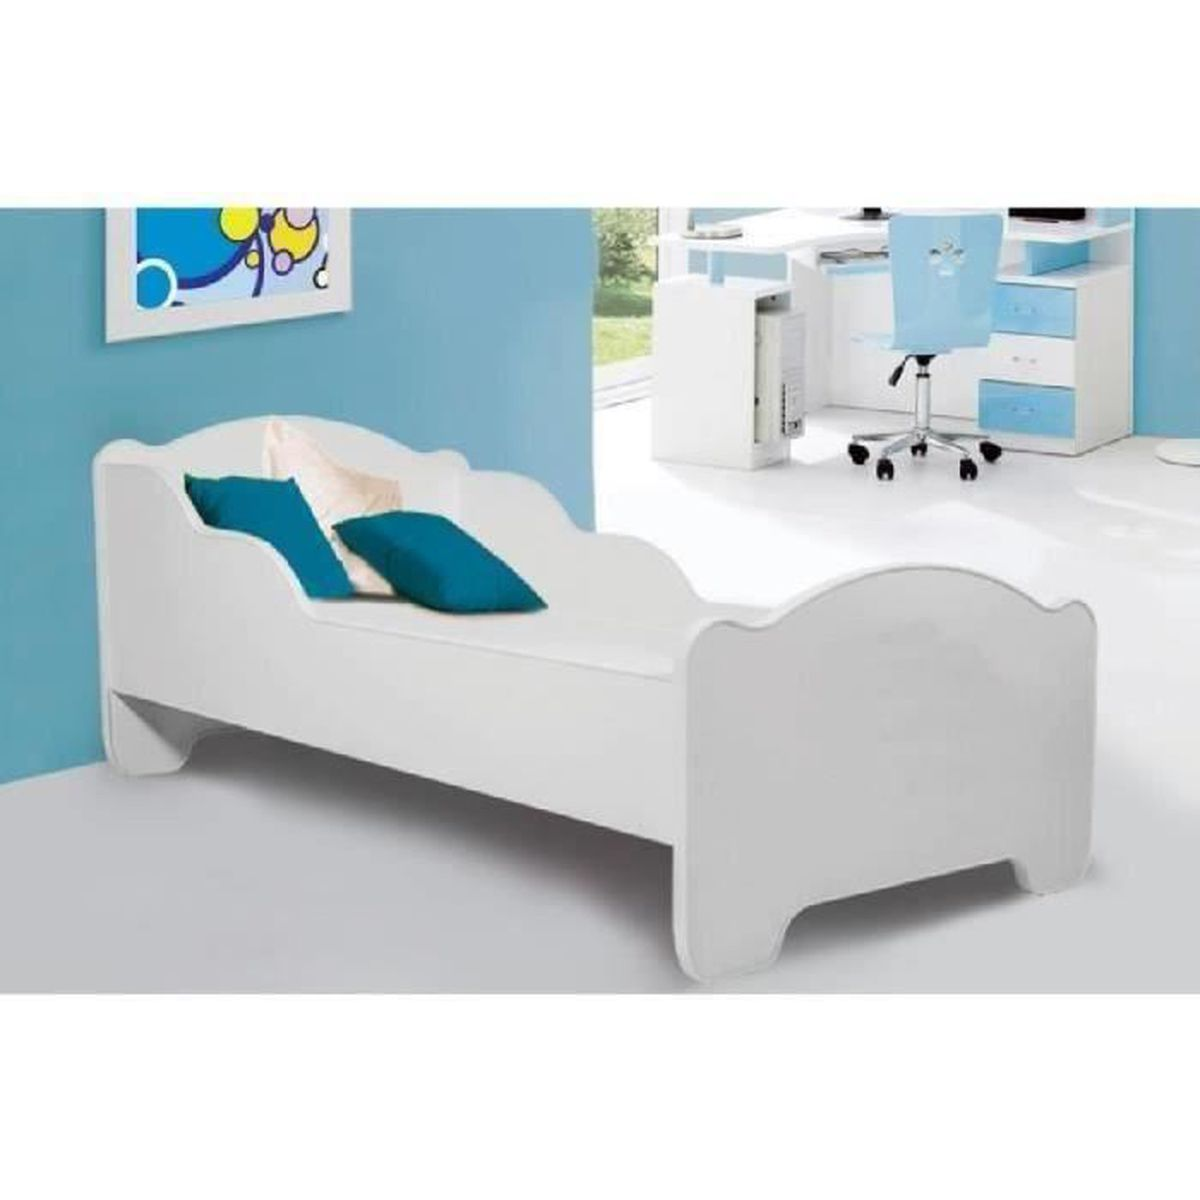 lit enfant m 140x70cm matelas sommier achat vente lit complet lit enfant m 140x70cm mate. Black Bedroom Furniture Sets. Home Design Ideas